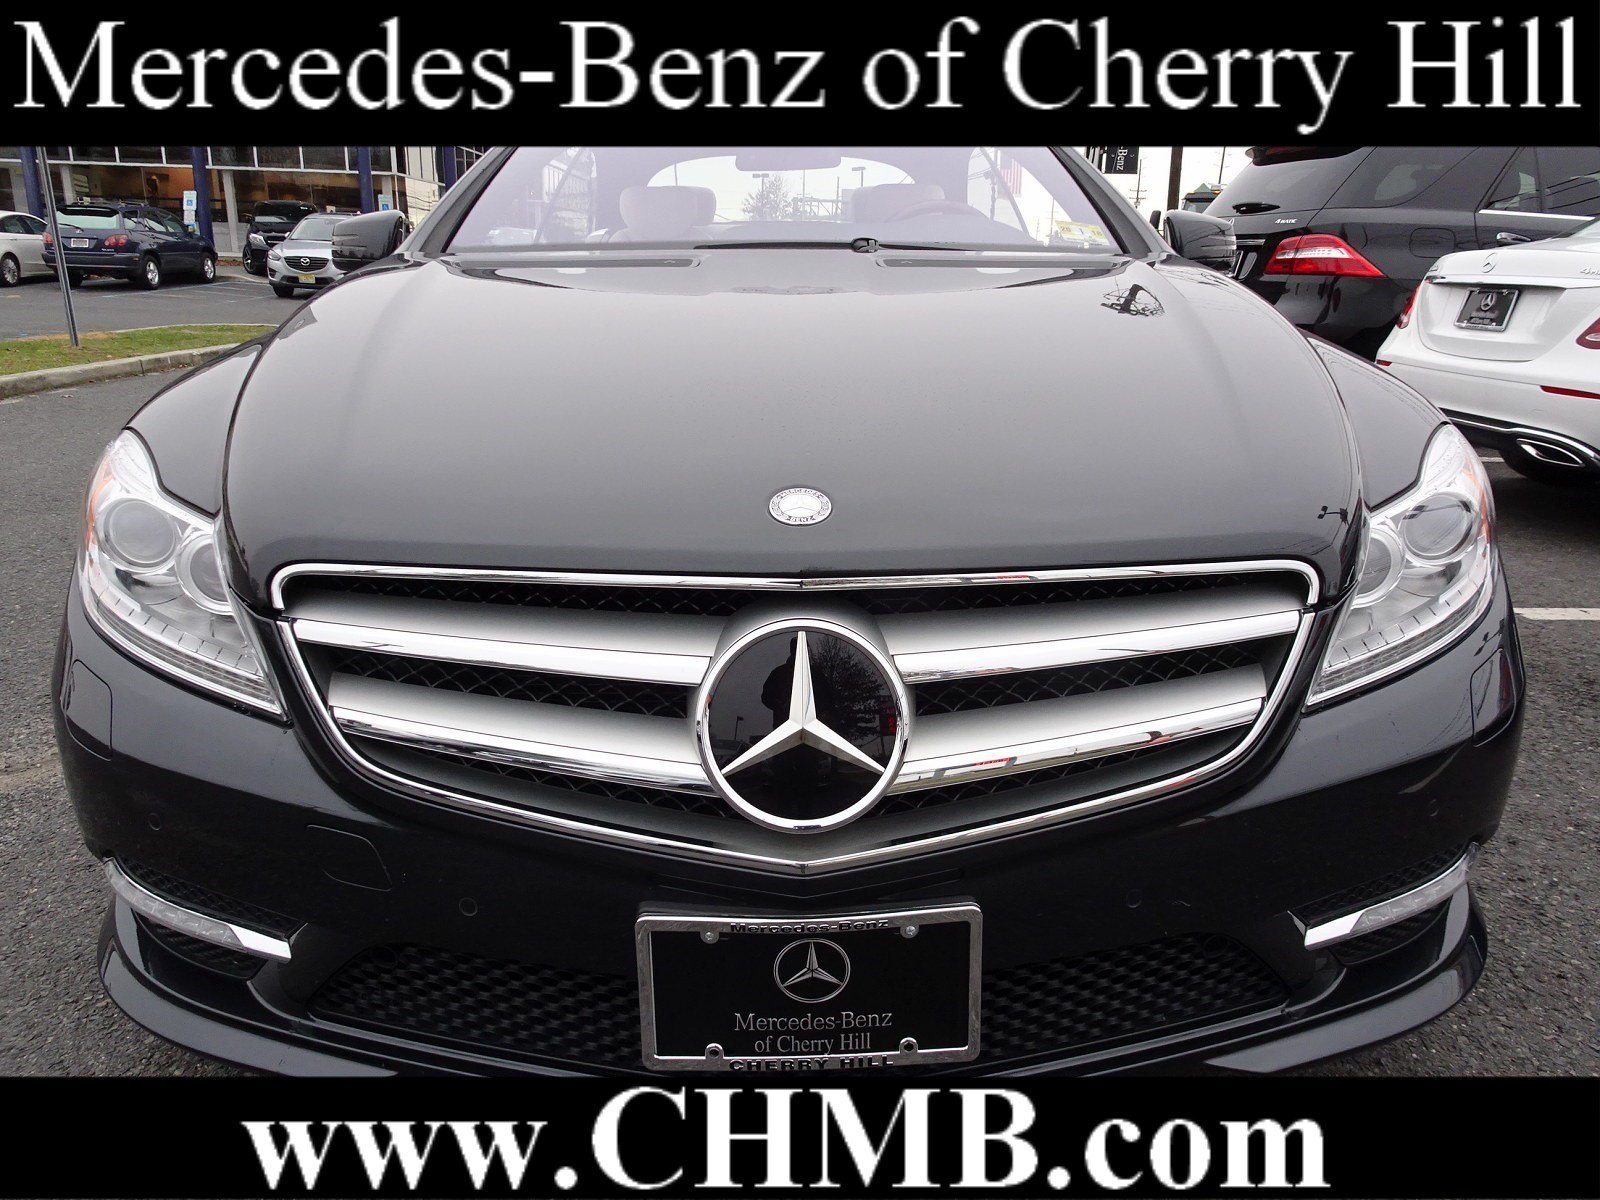 New 2011 Mercedes Benz CL Class CL 550 Sport COUPE in Cherry Hill